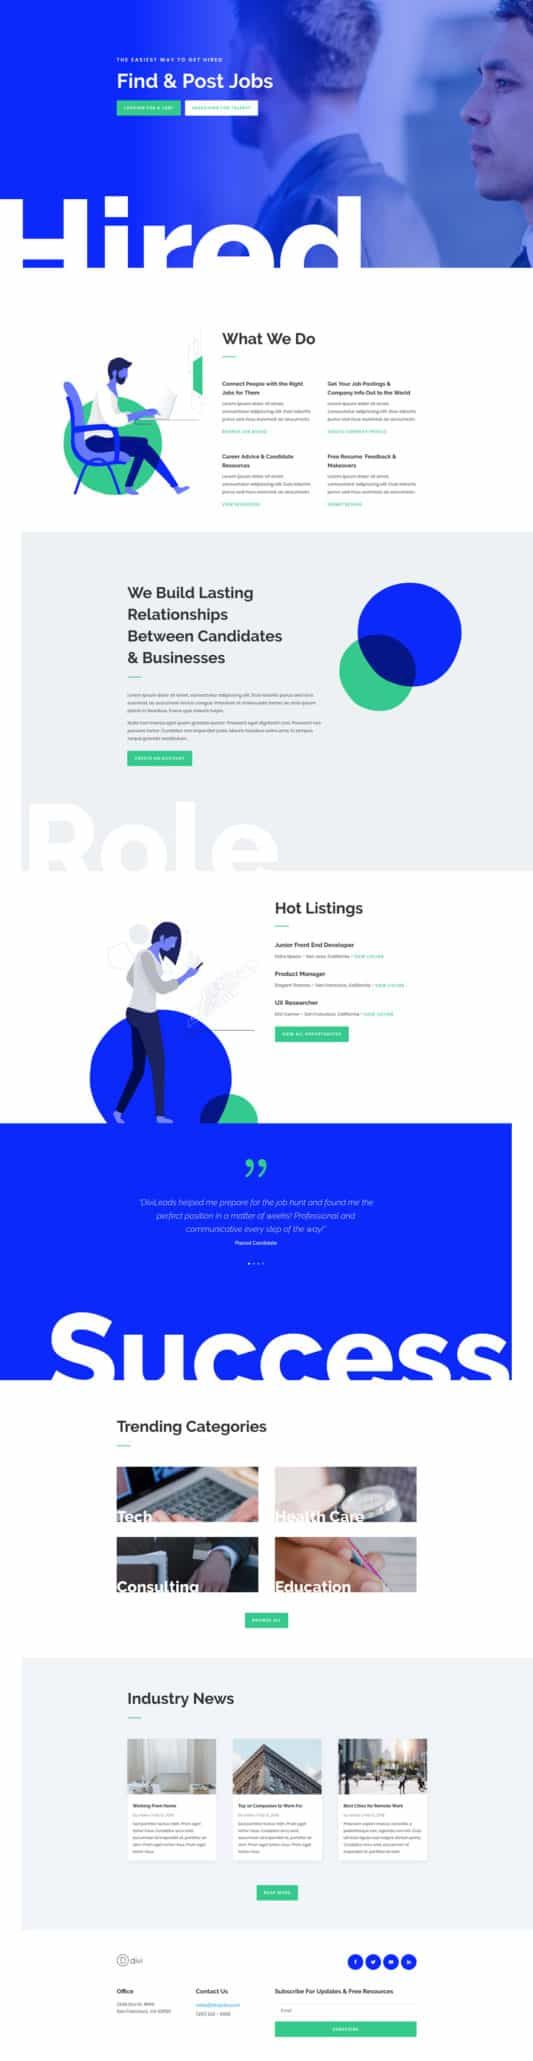 The Job Recruiter Page Style: Homepage Design 1